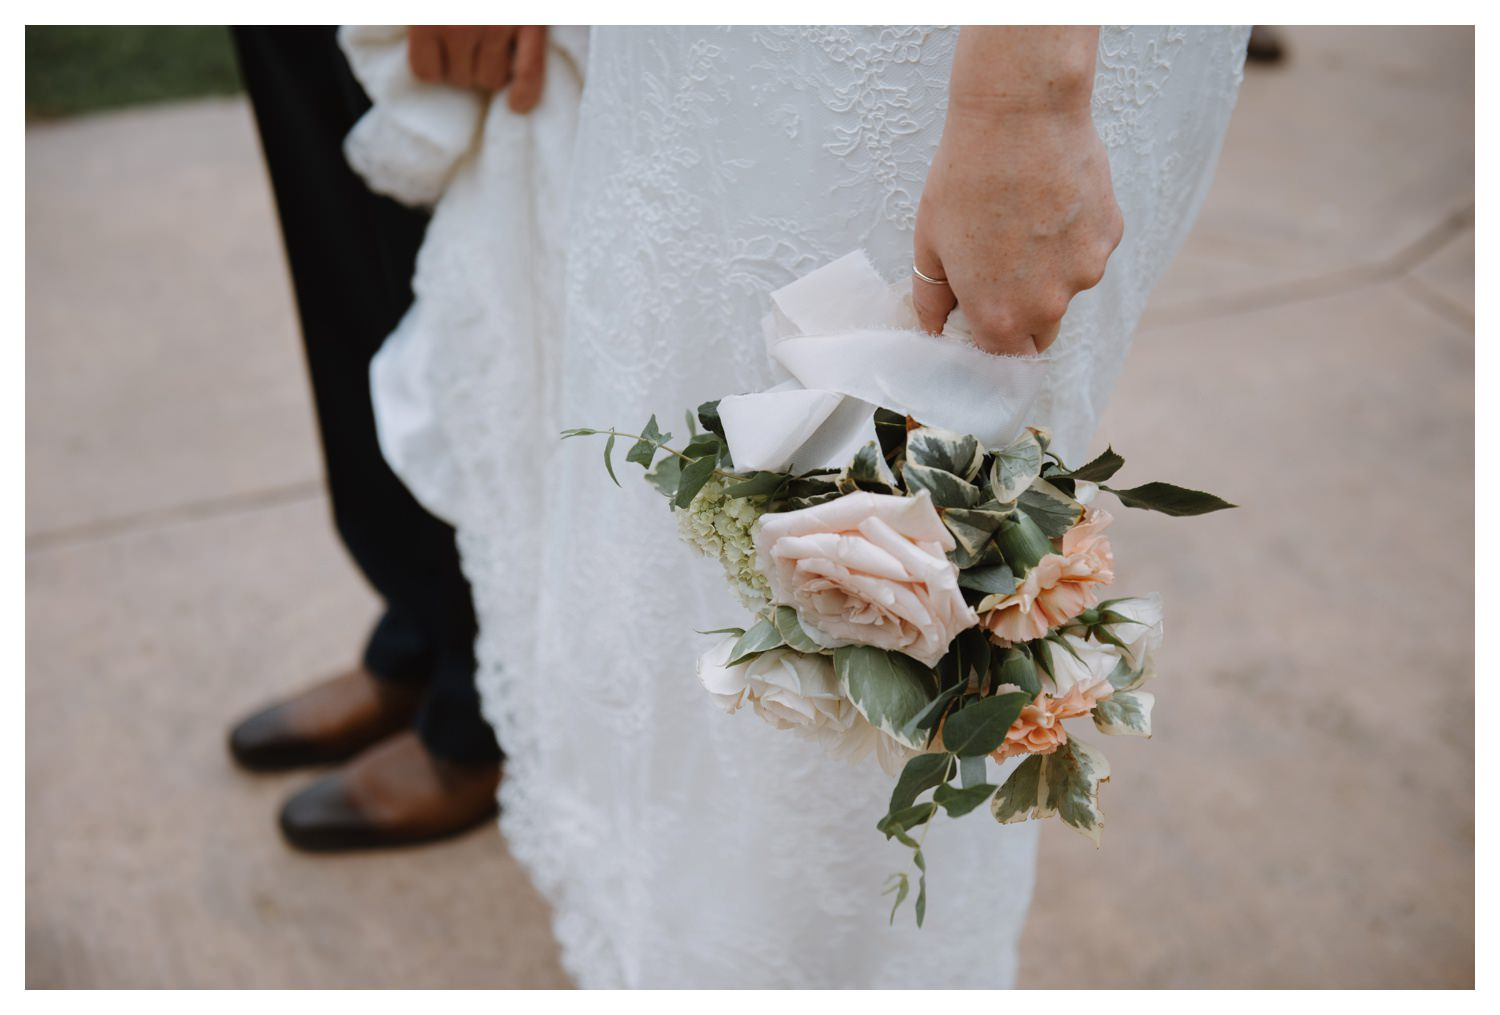 A gorgeous wedding bouquet hangs nonchalantly at the brides side.